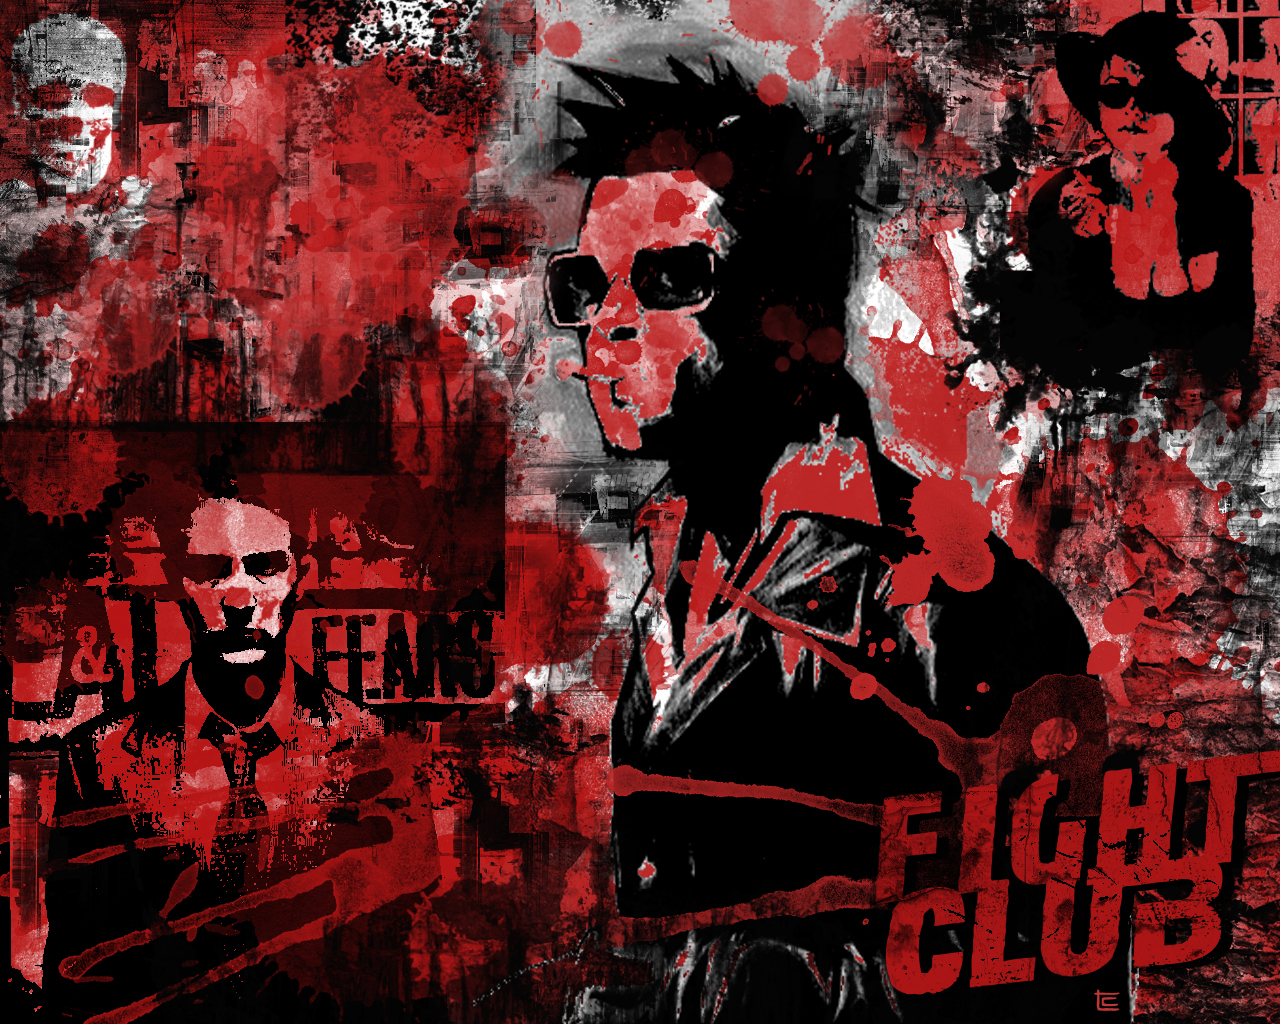 quotes-fight-club-1920x1080-Movie-Fight-Club-HD-High-Quality-wallpaper-wp3809658